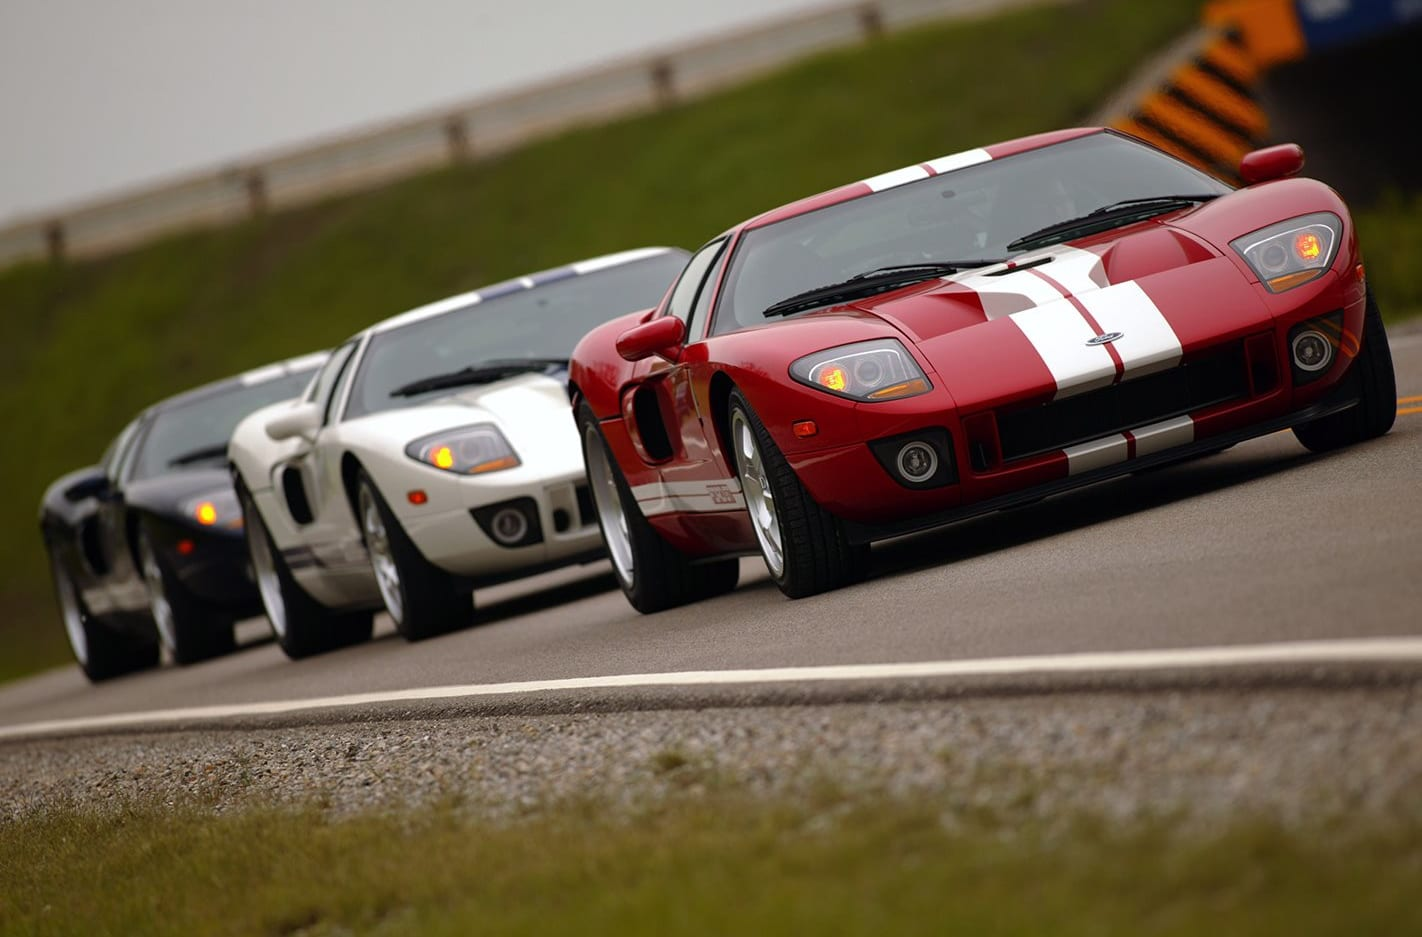 2005 Ford GT group of three cars